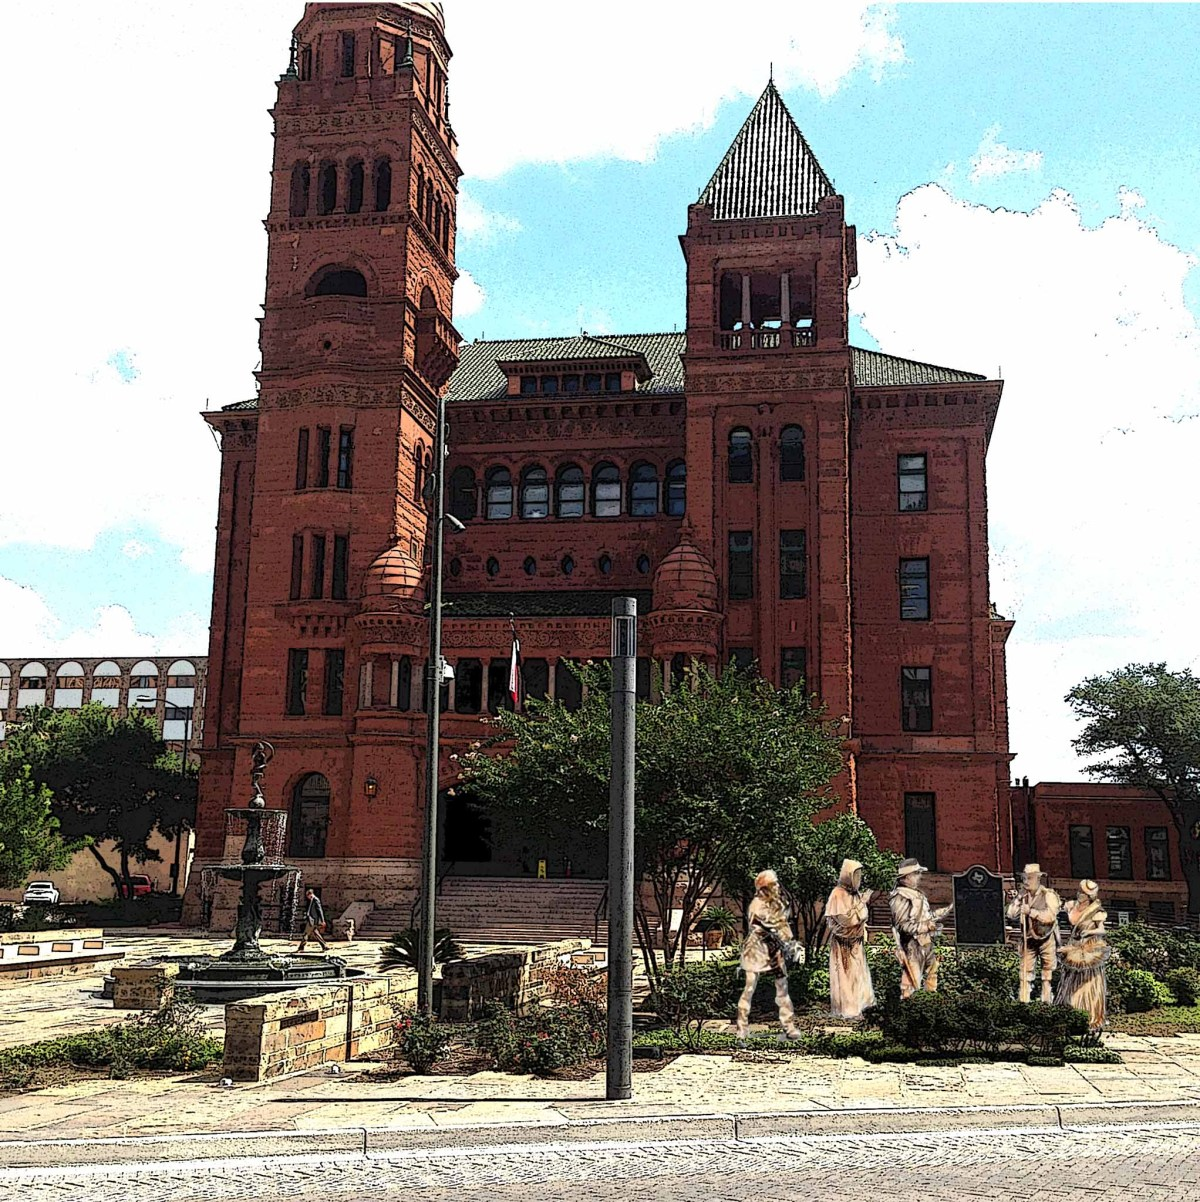 The proposed monument honoring the first Canary Island settlers in San Antonio could go in front of the Bexar County Courthouse.